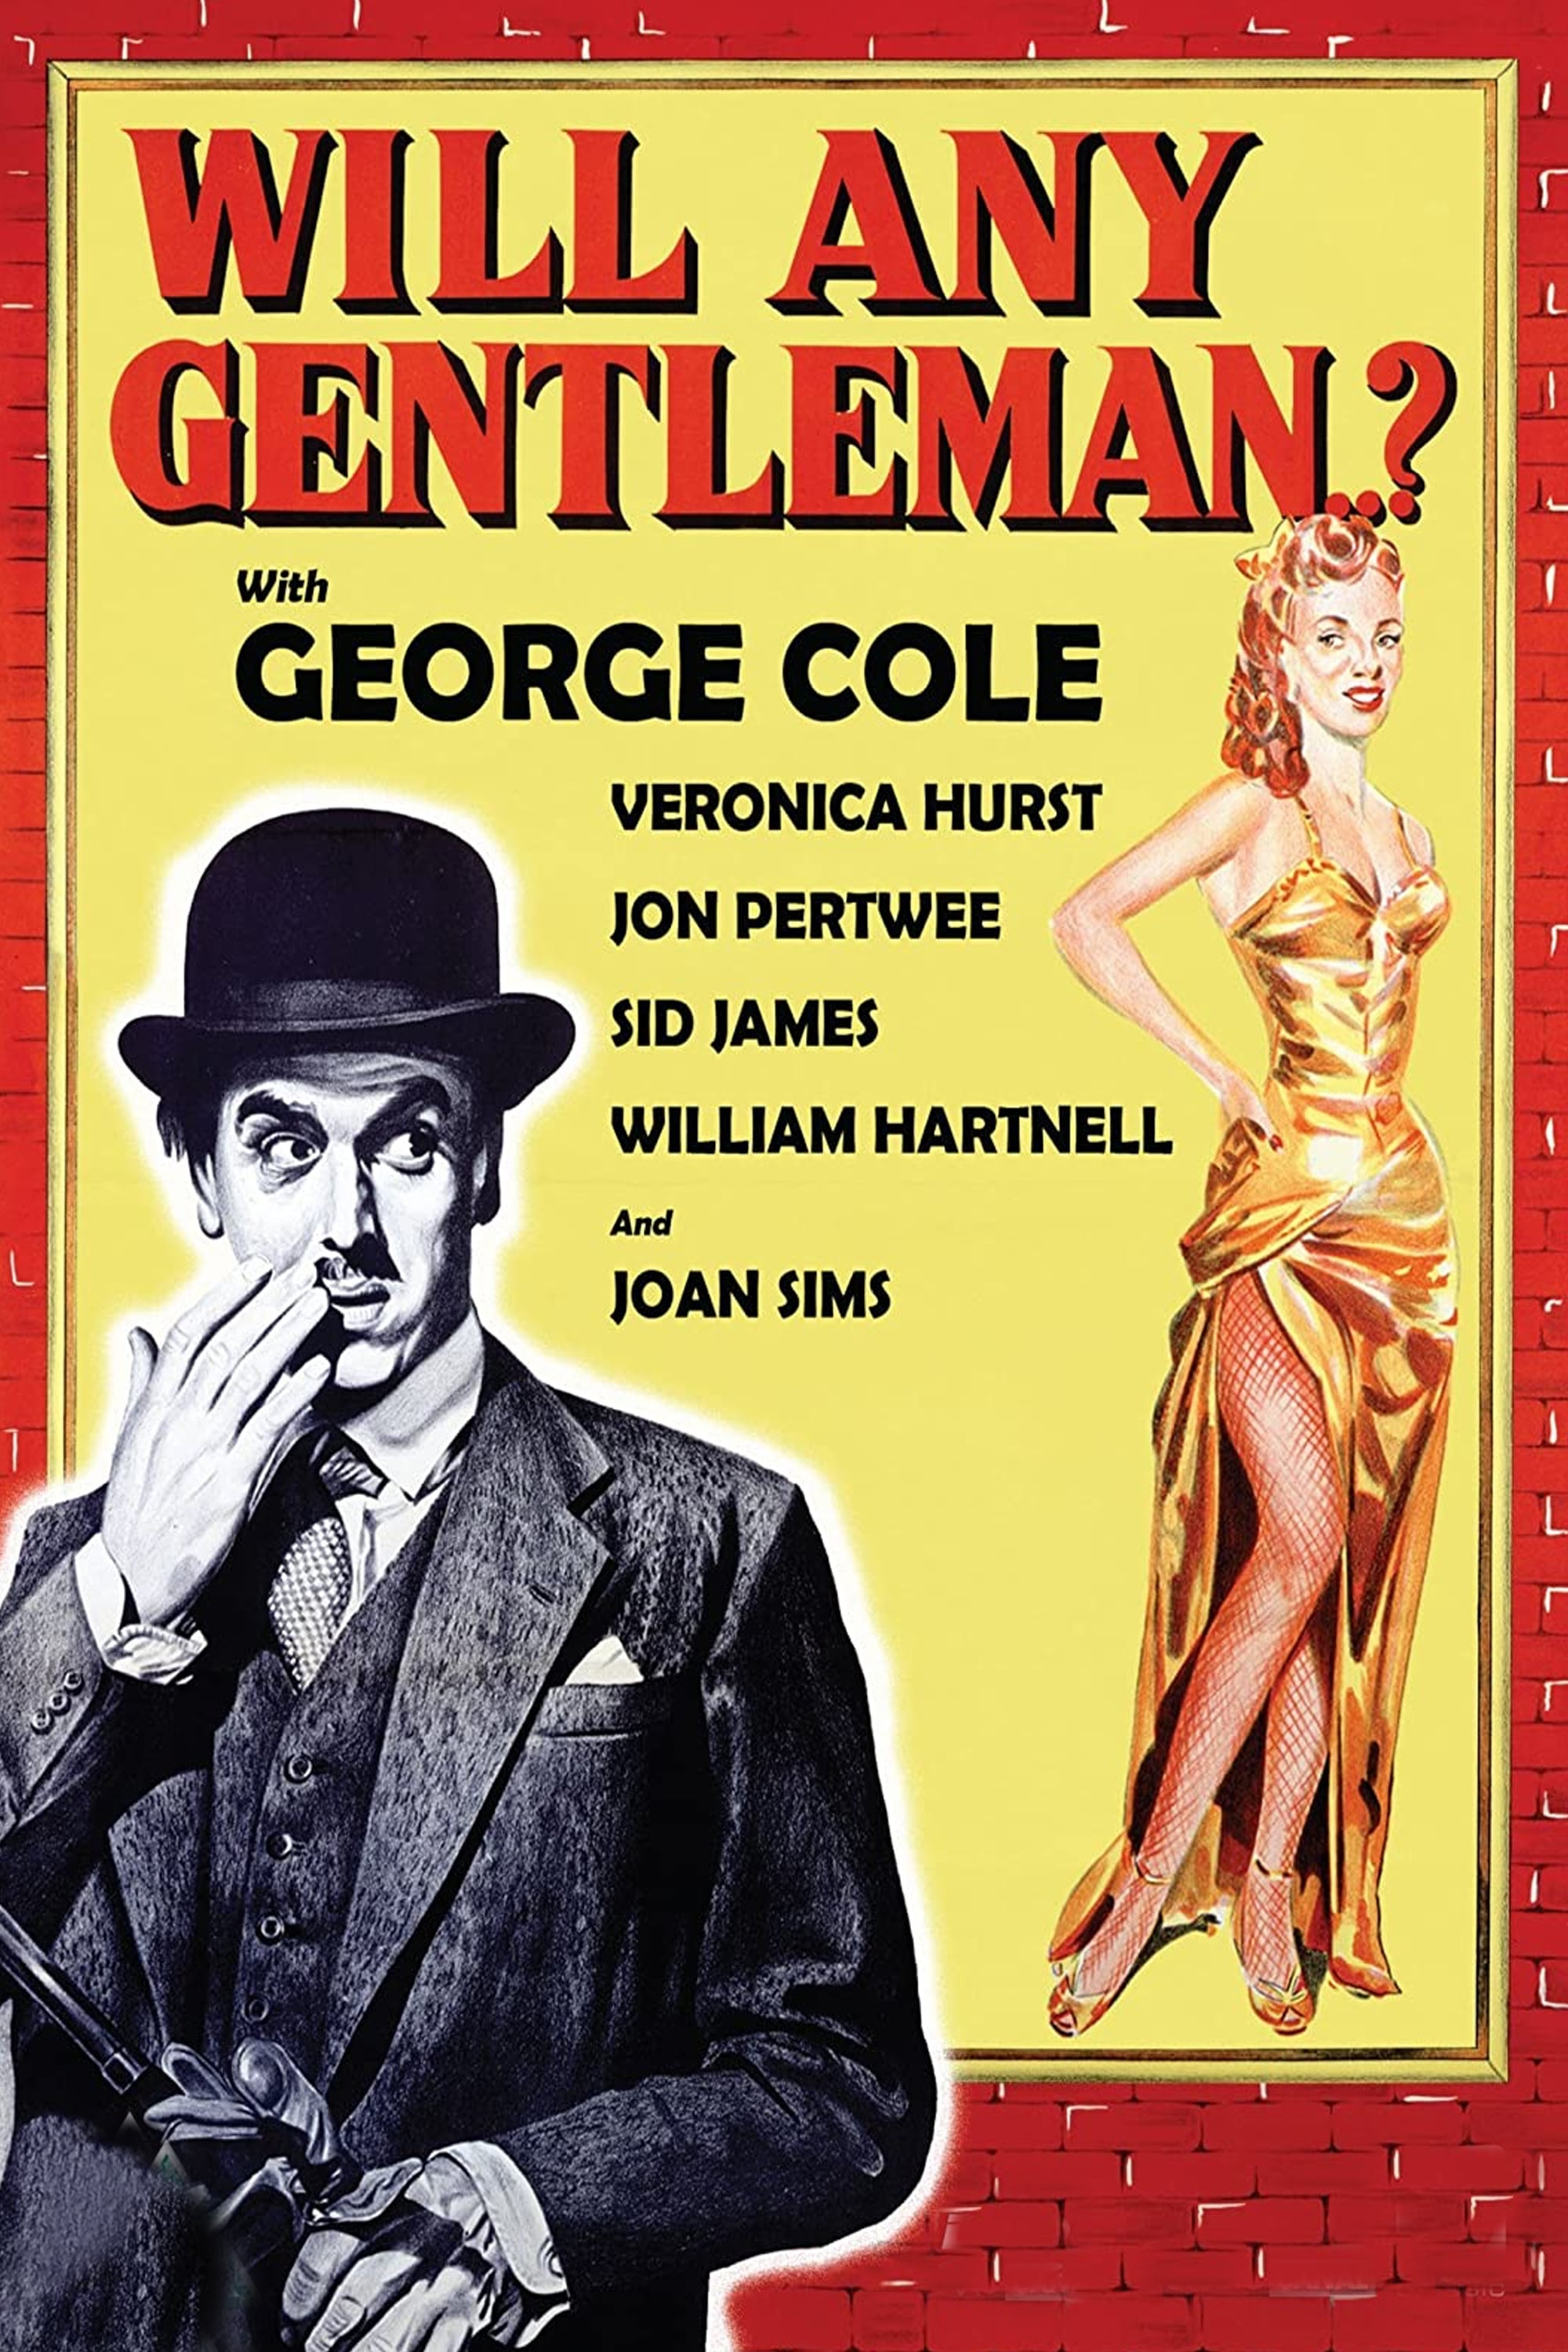 Will Any Gentleman...? (1953)